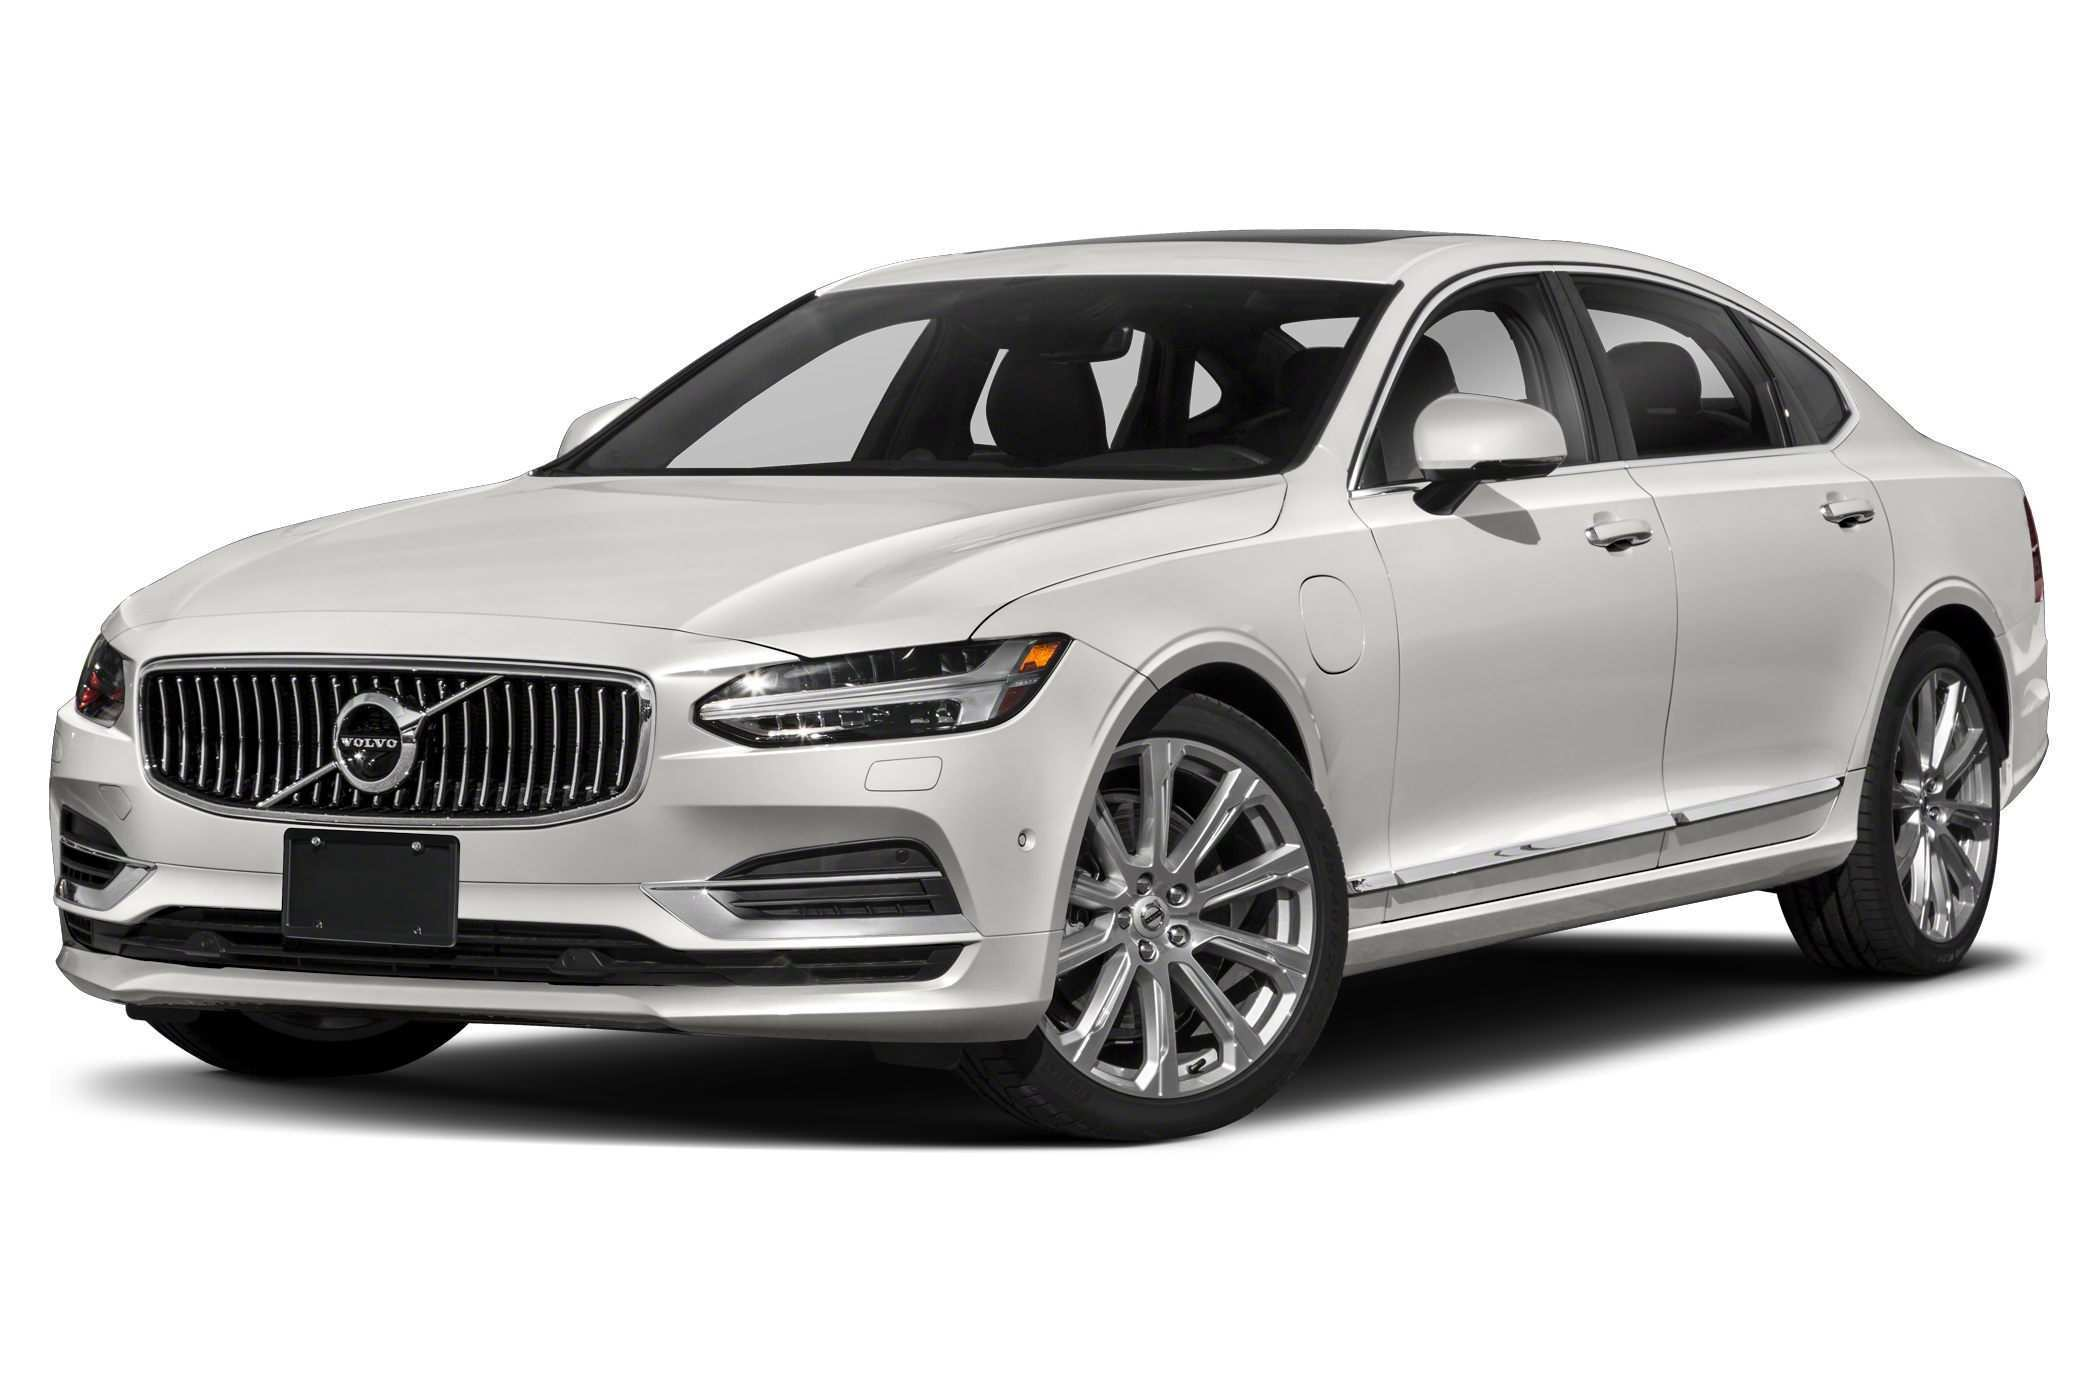 98 Concept of S90 Volvo 2019 Picture for S90 Volvo 2019